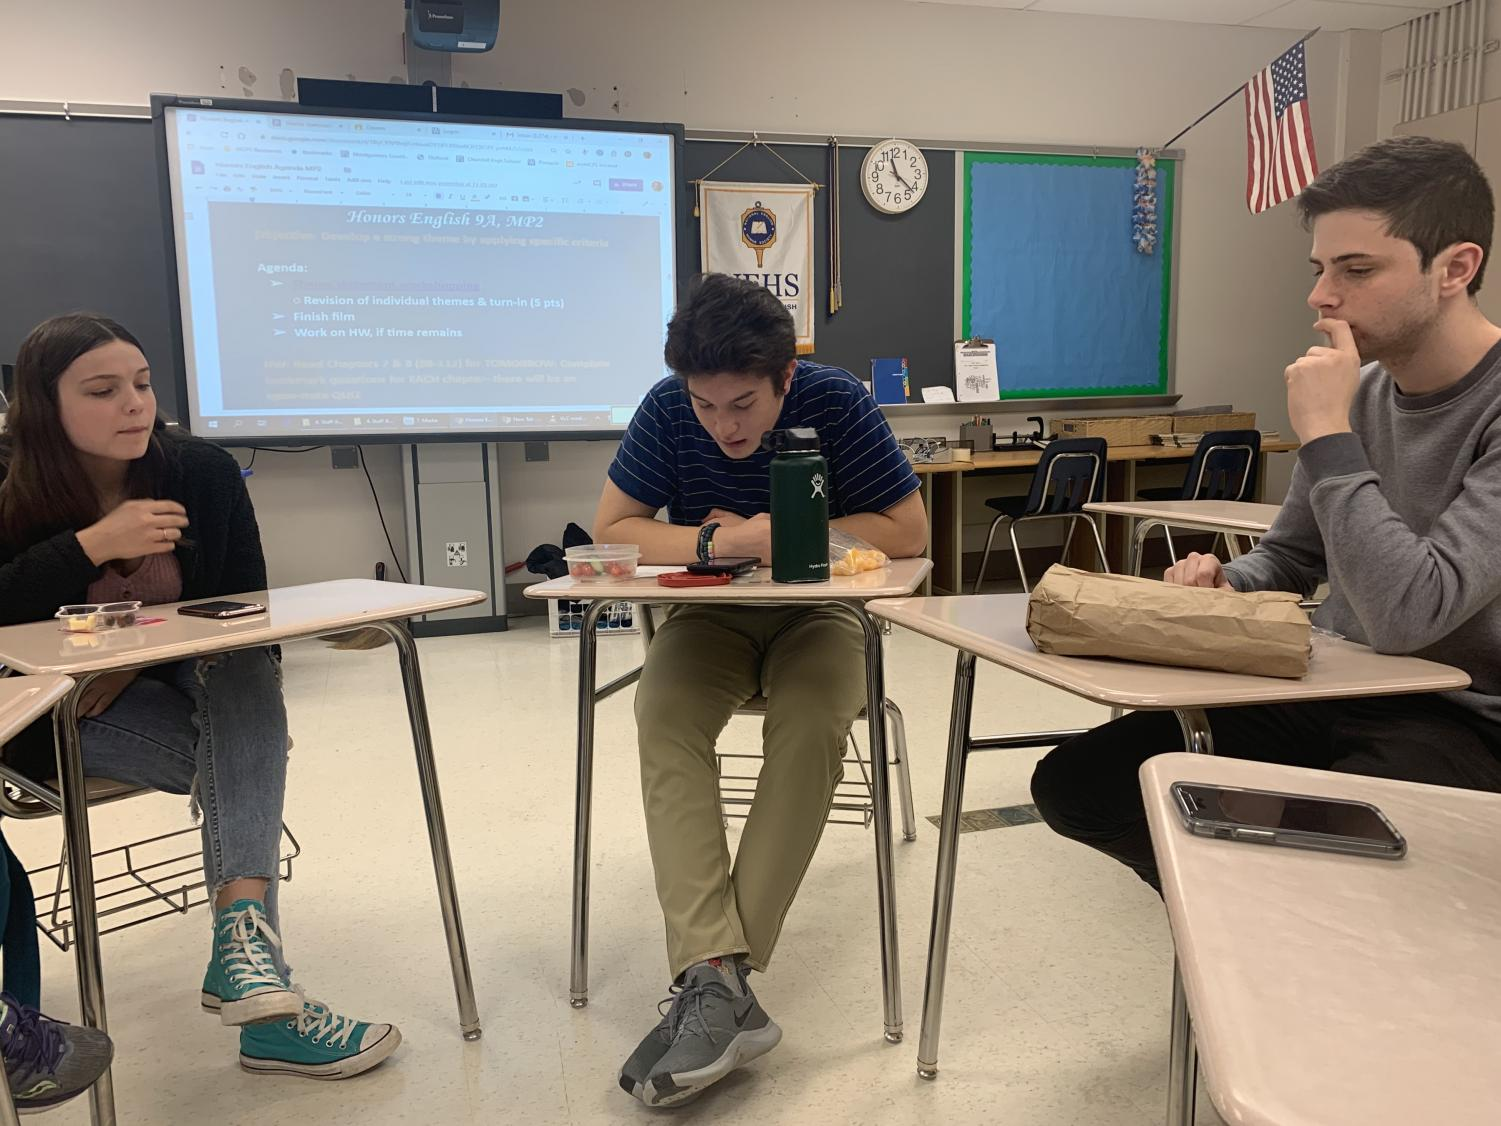 """Senior Mary Hinton (left) and Junior Trevor Gardemal (right) join EHS student board member Jonathan Silverman (middle) to discuss Ray Bradbury's short story """"There Will Come Soft Rains"""" on Nov. 21st. These book club meetings occur around once a month and members can request which books to read and discuss."""